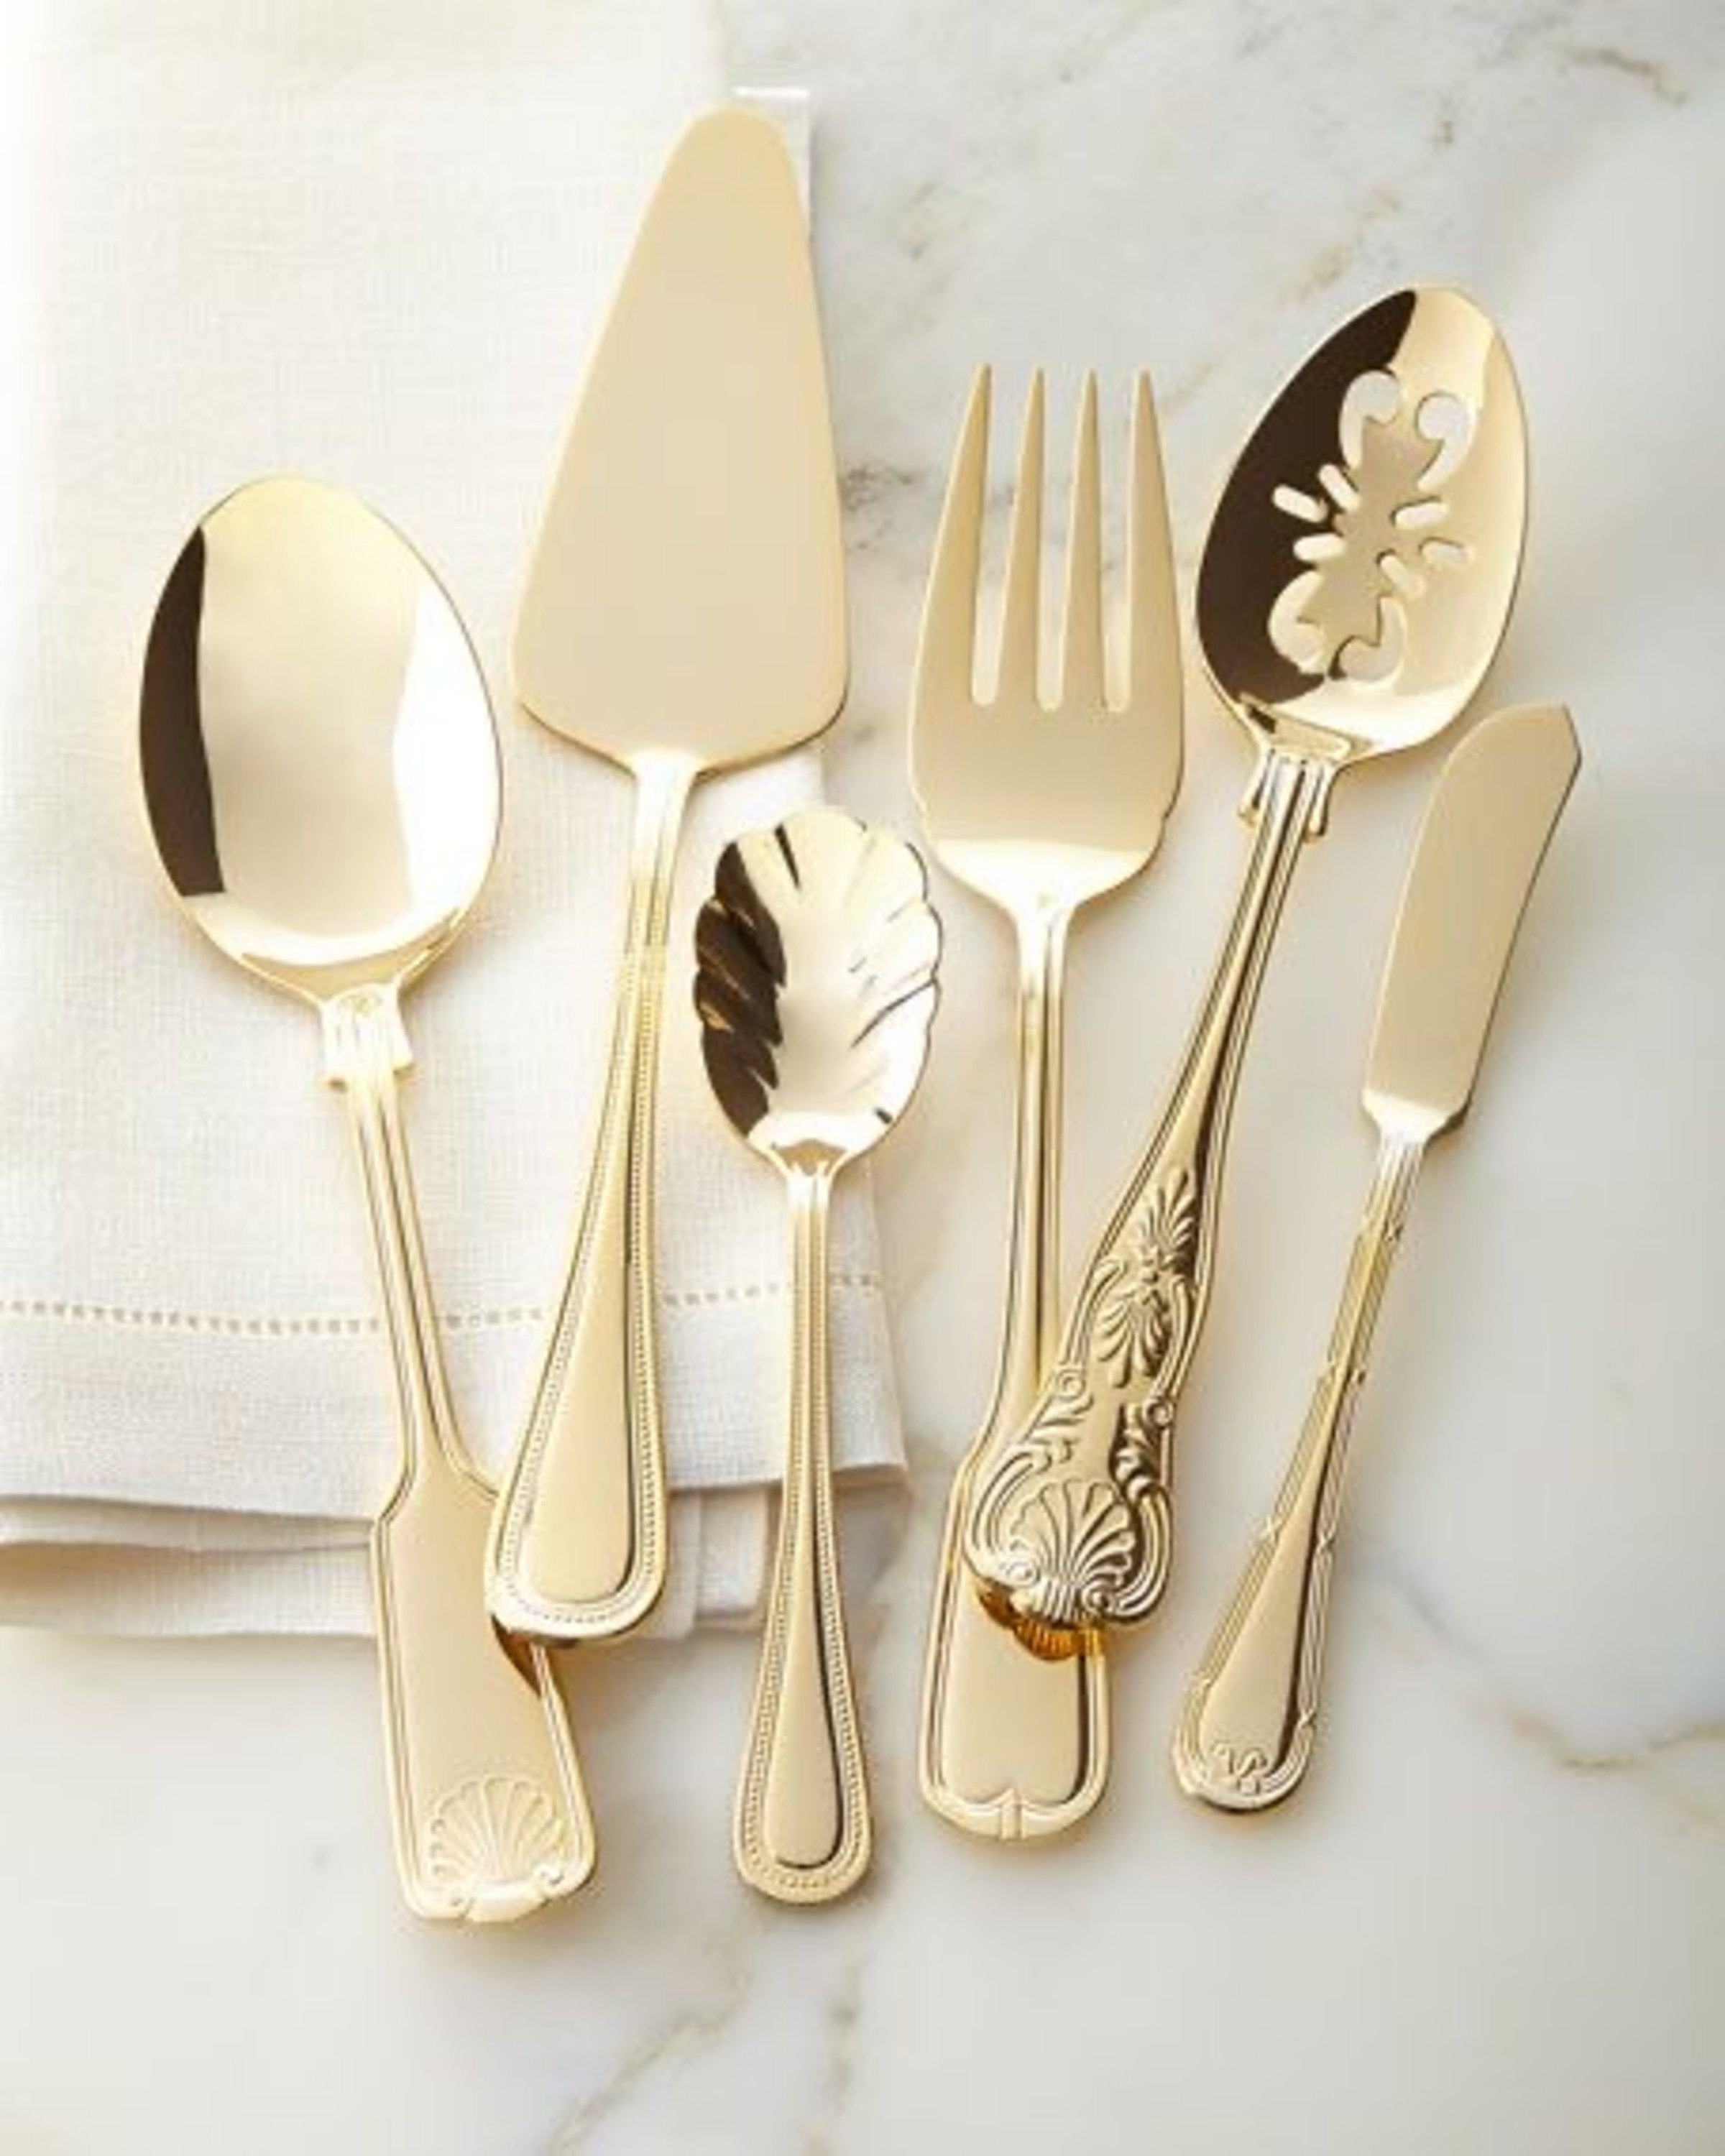 Luxury gold finish cutlery | Angie Homes